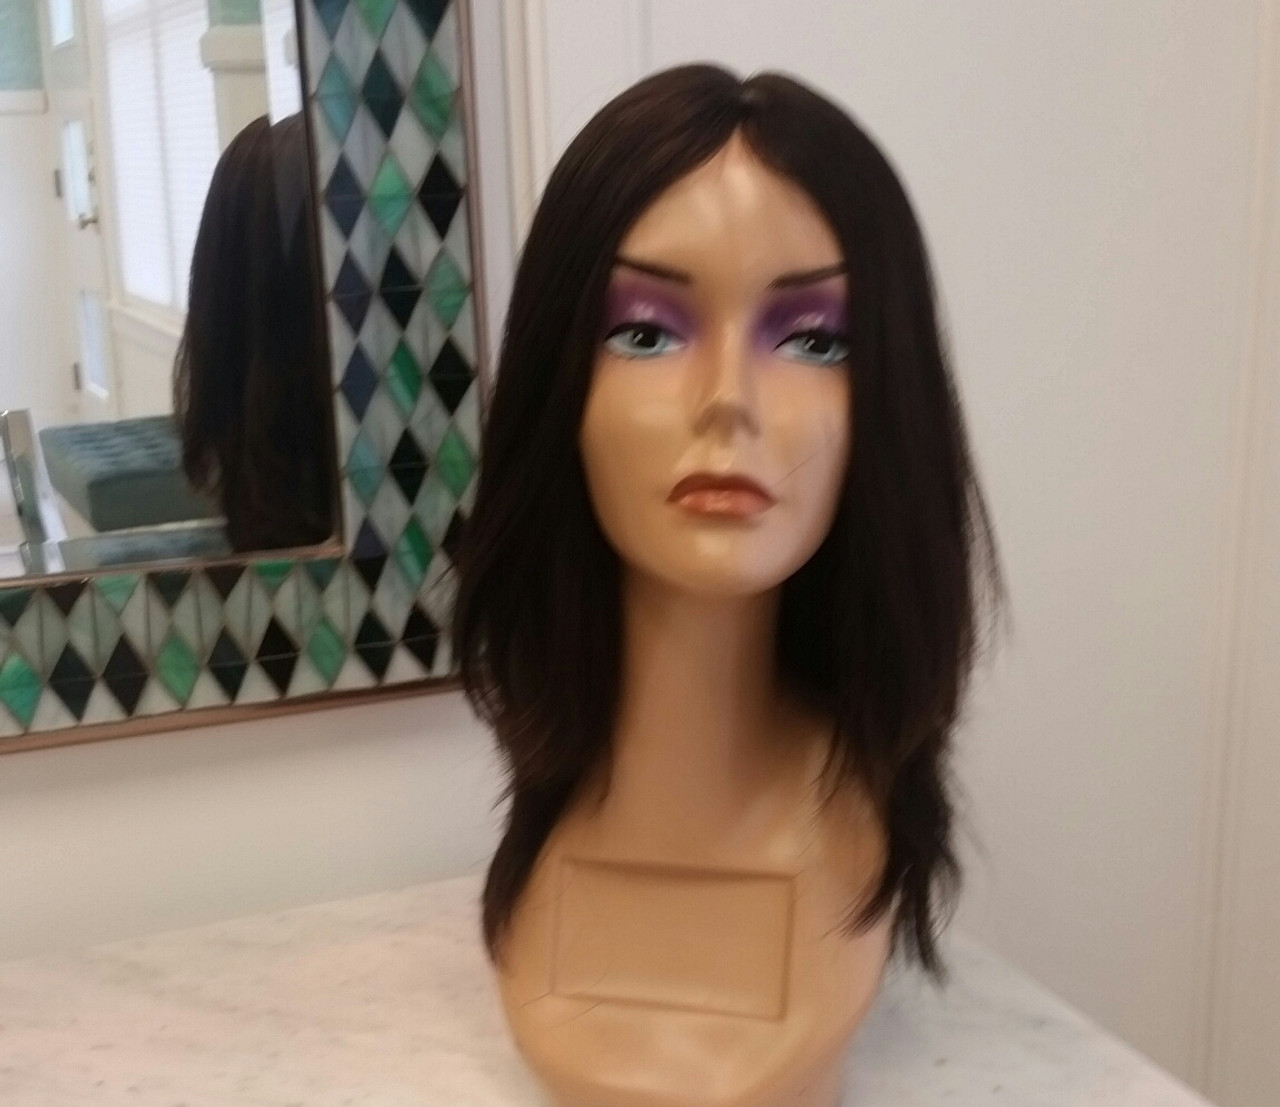 Tuni Wig 100 Virgin European Hair On Top And Asian Hair On The